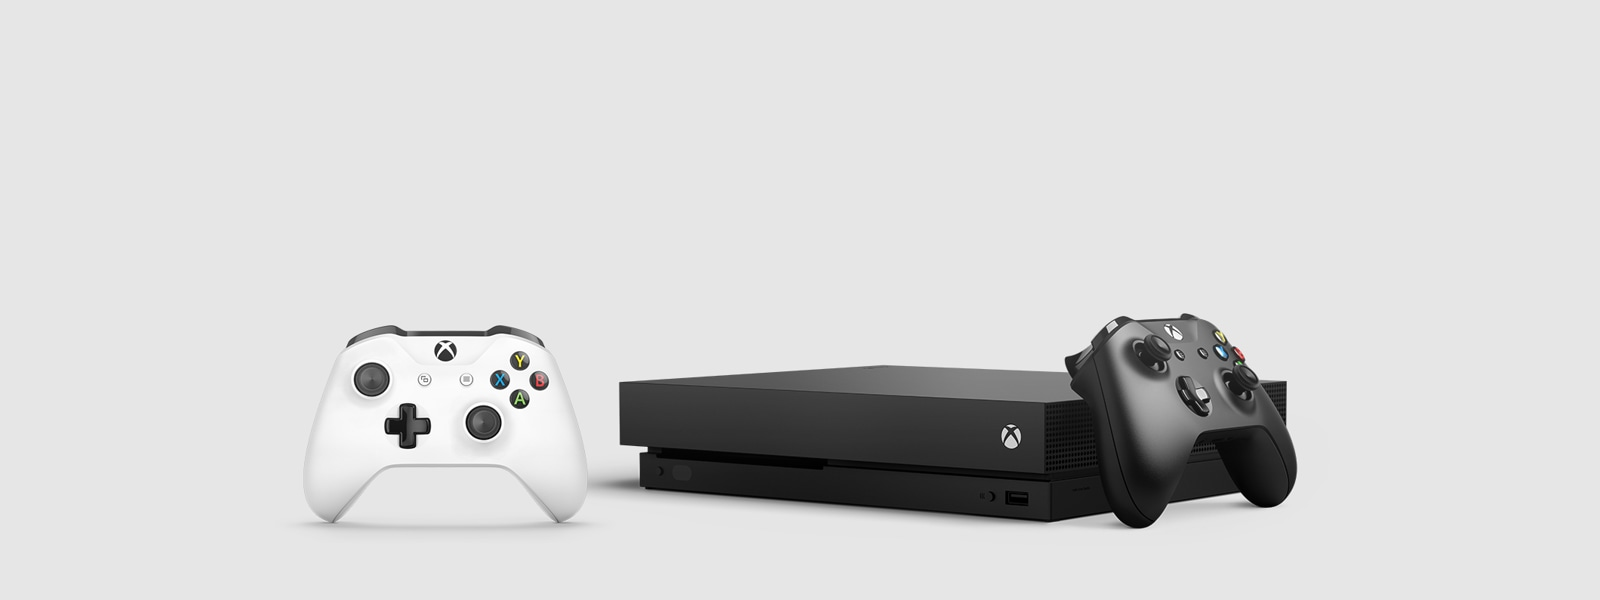 Xbox One X console with black and white Xbox One controllers.